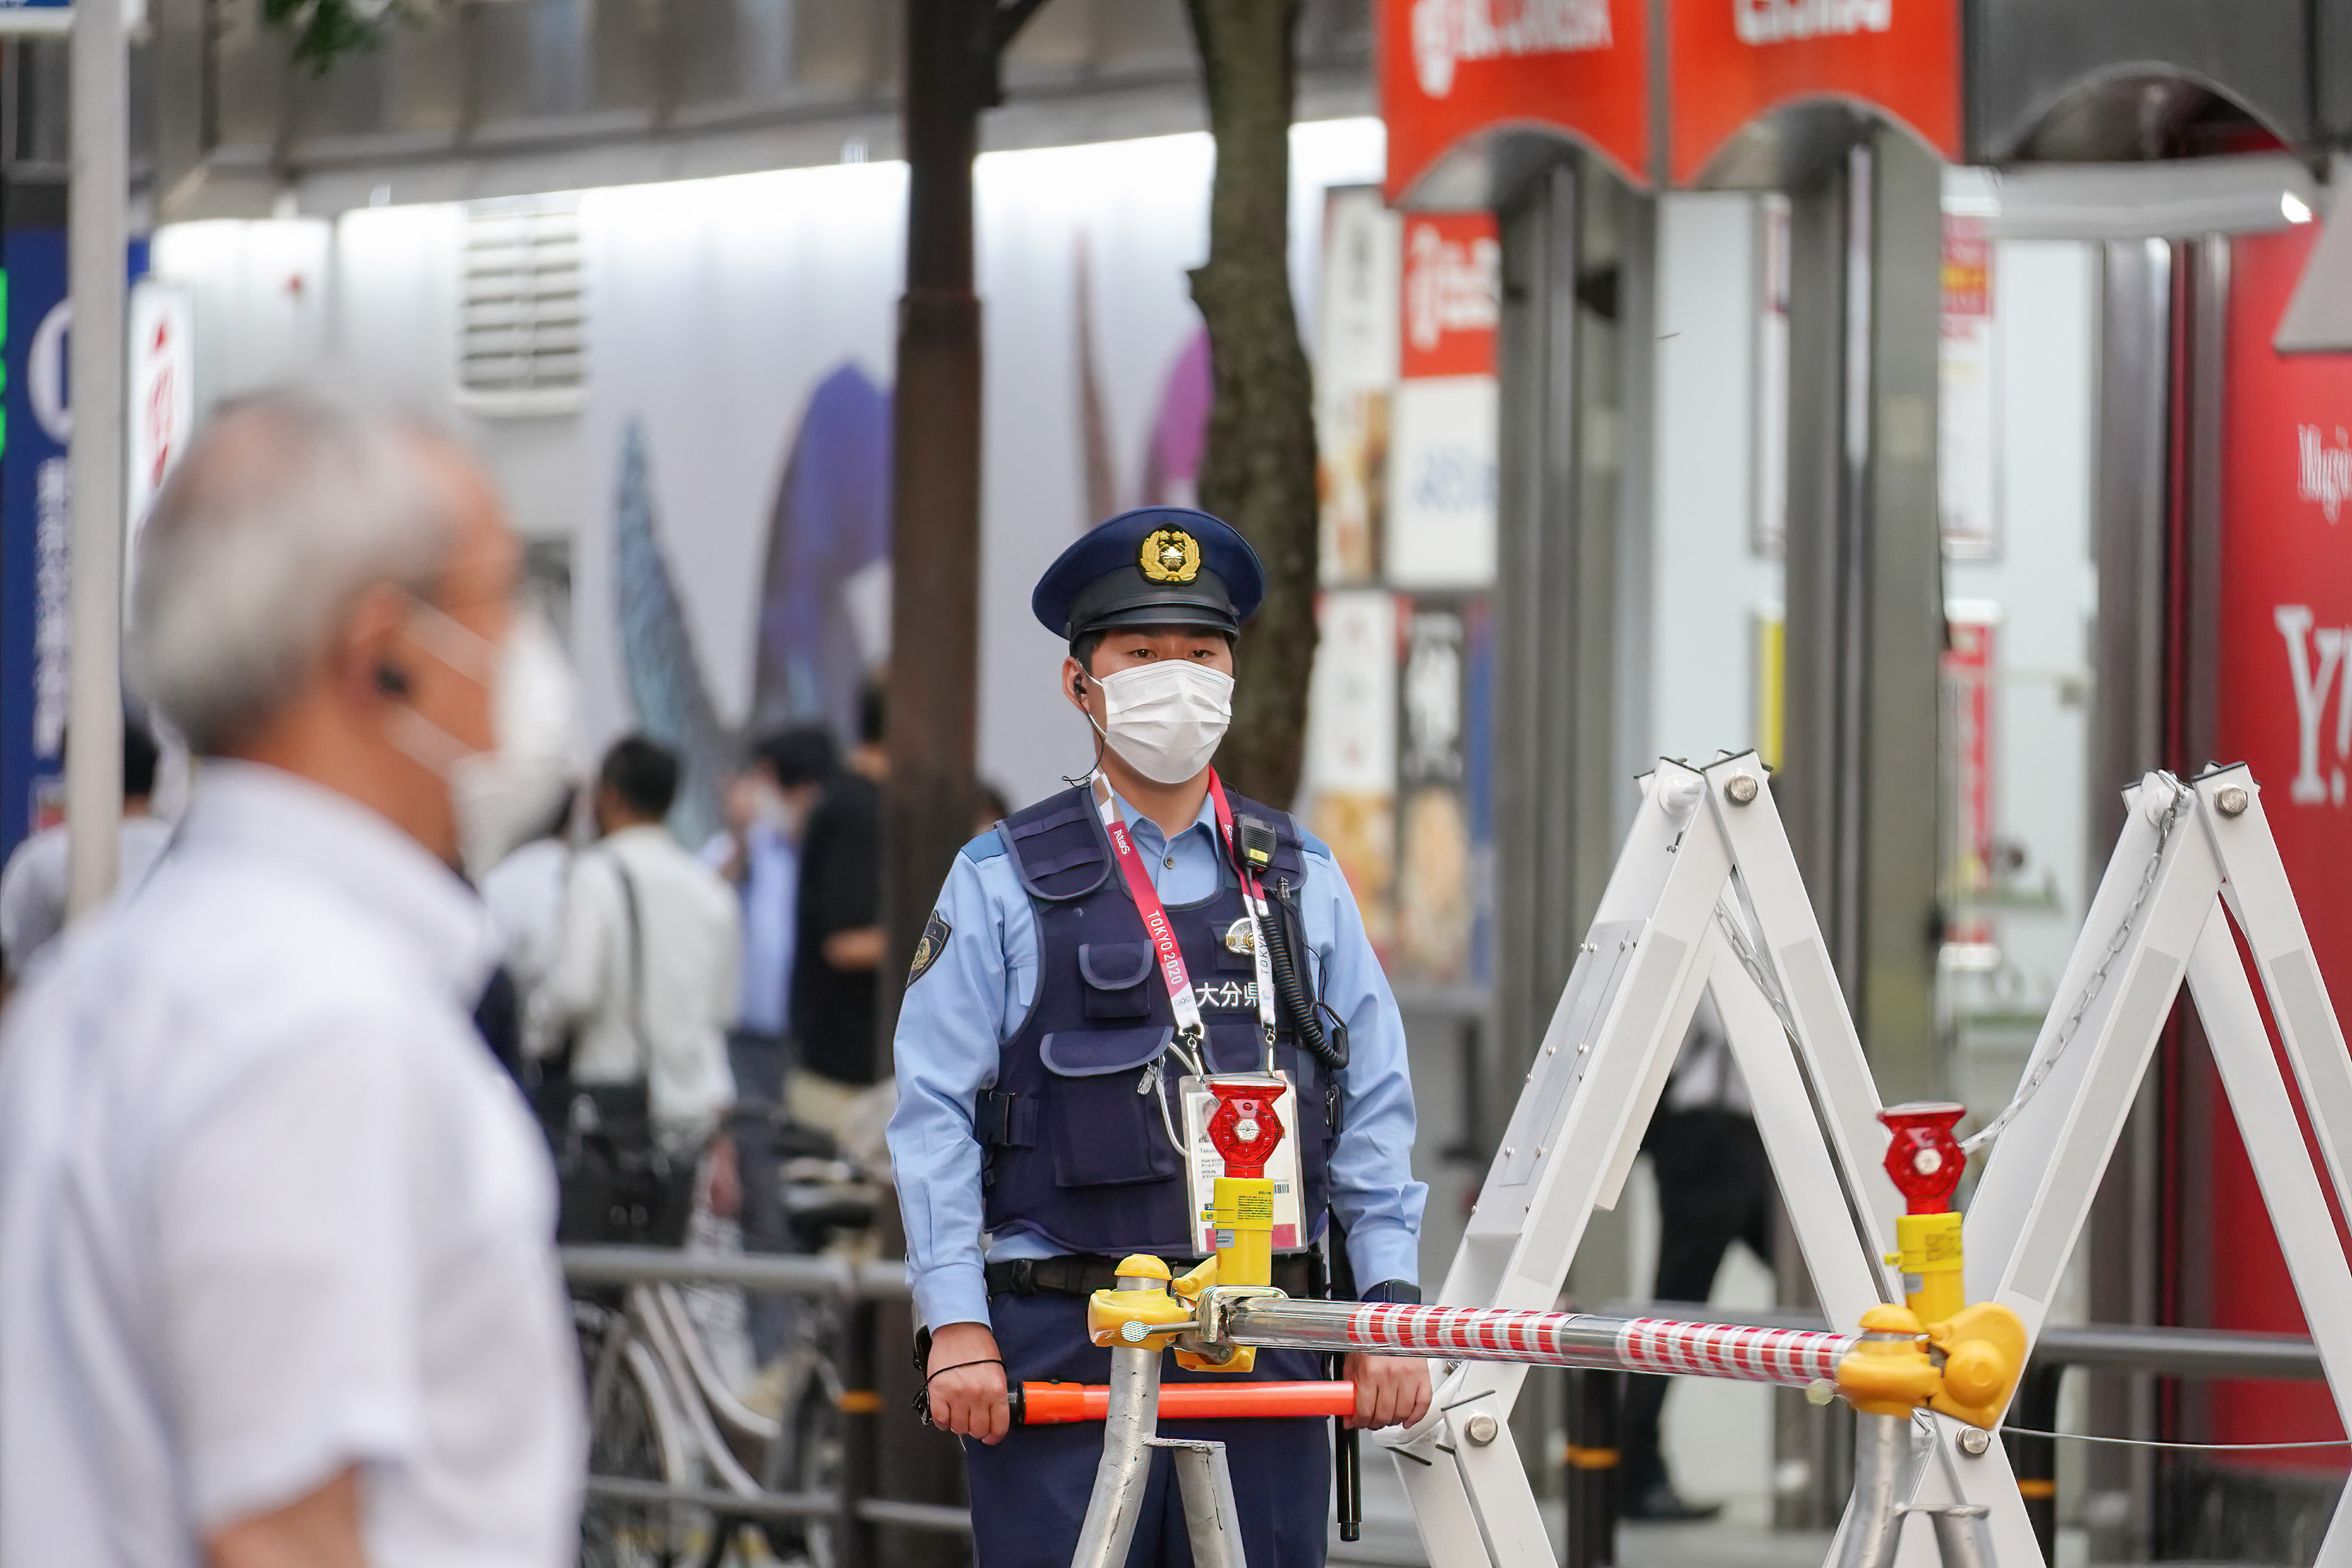 Tokyo Olympics Shaken But Not Stirred By 5.8 Earthquake & Aftershocks